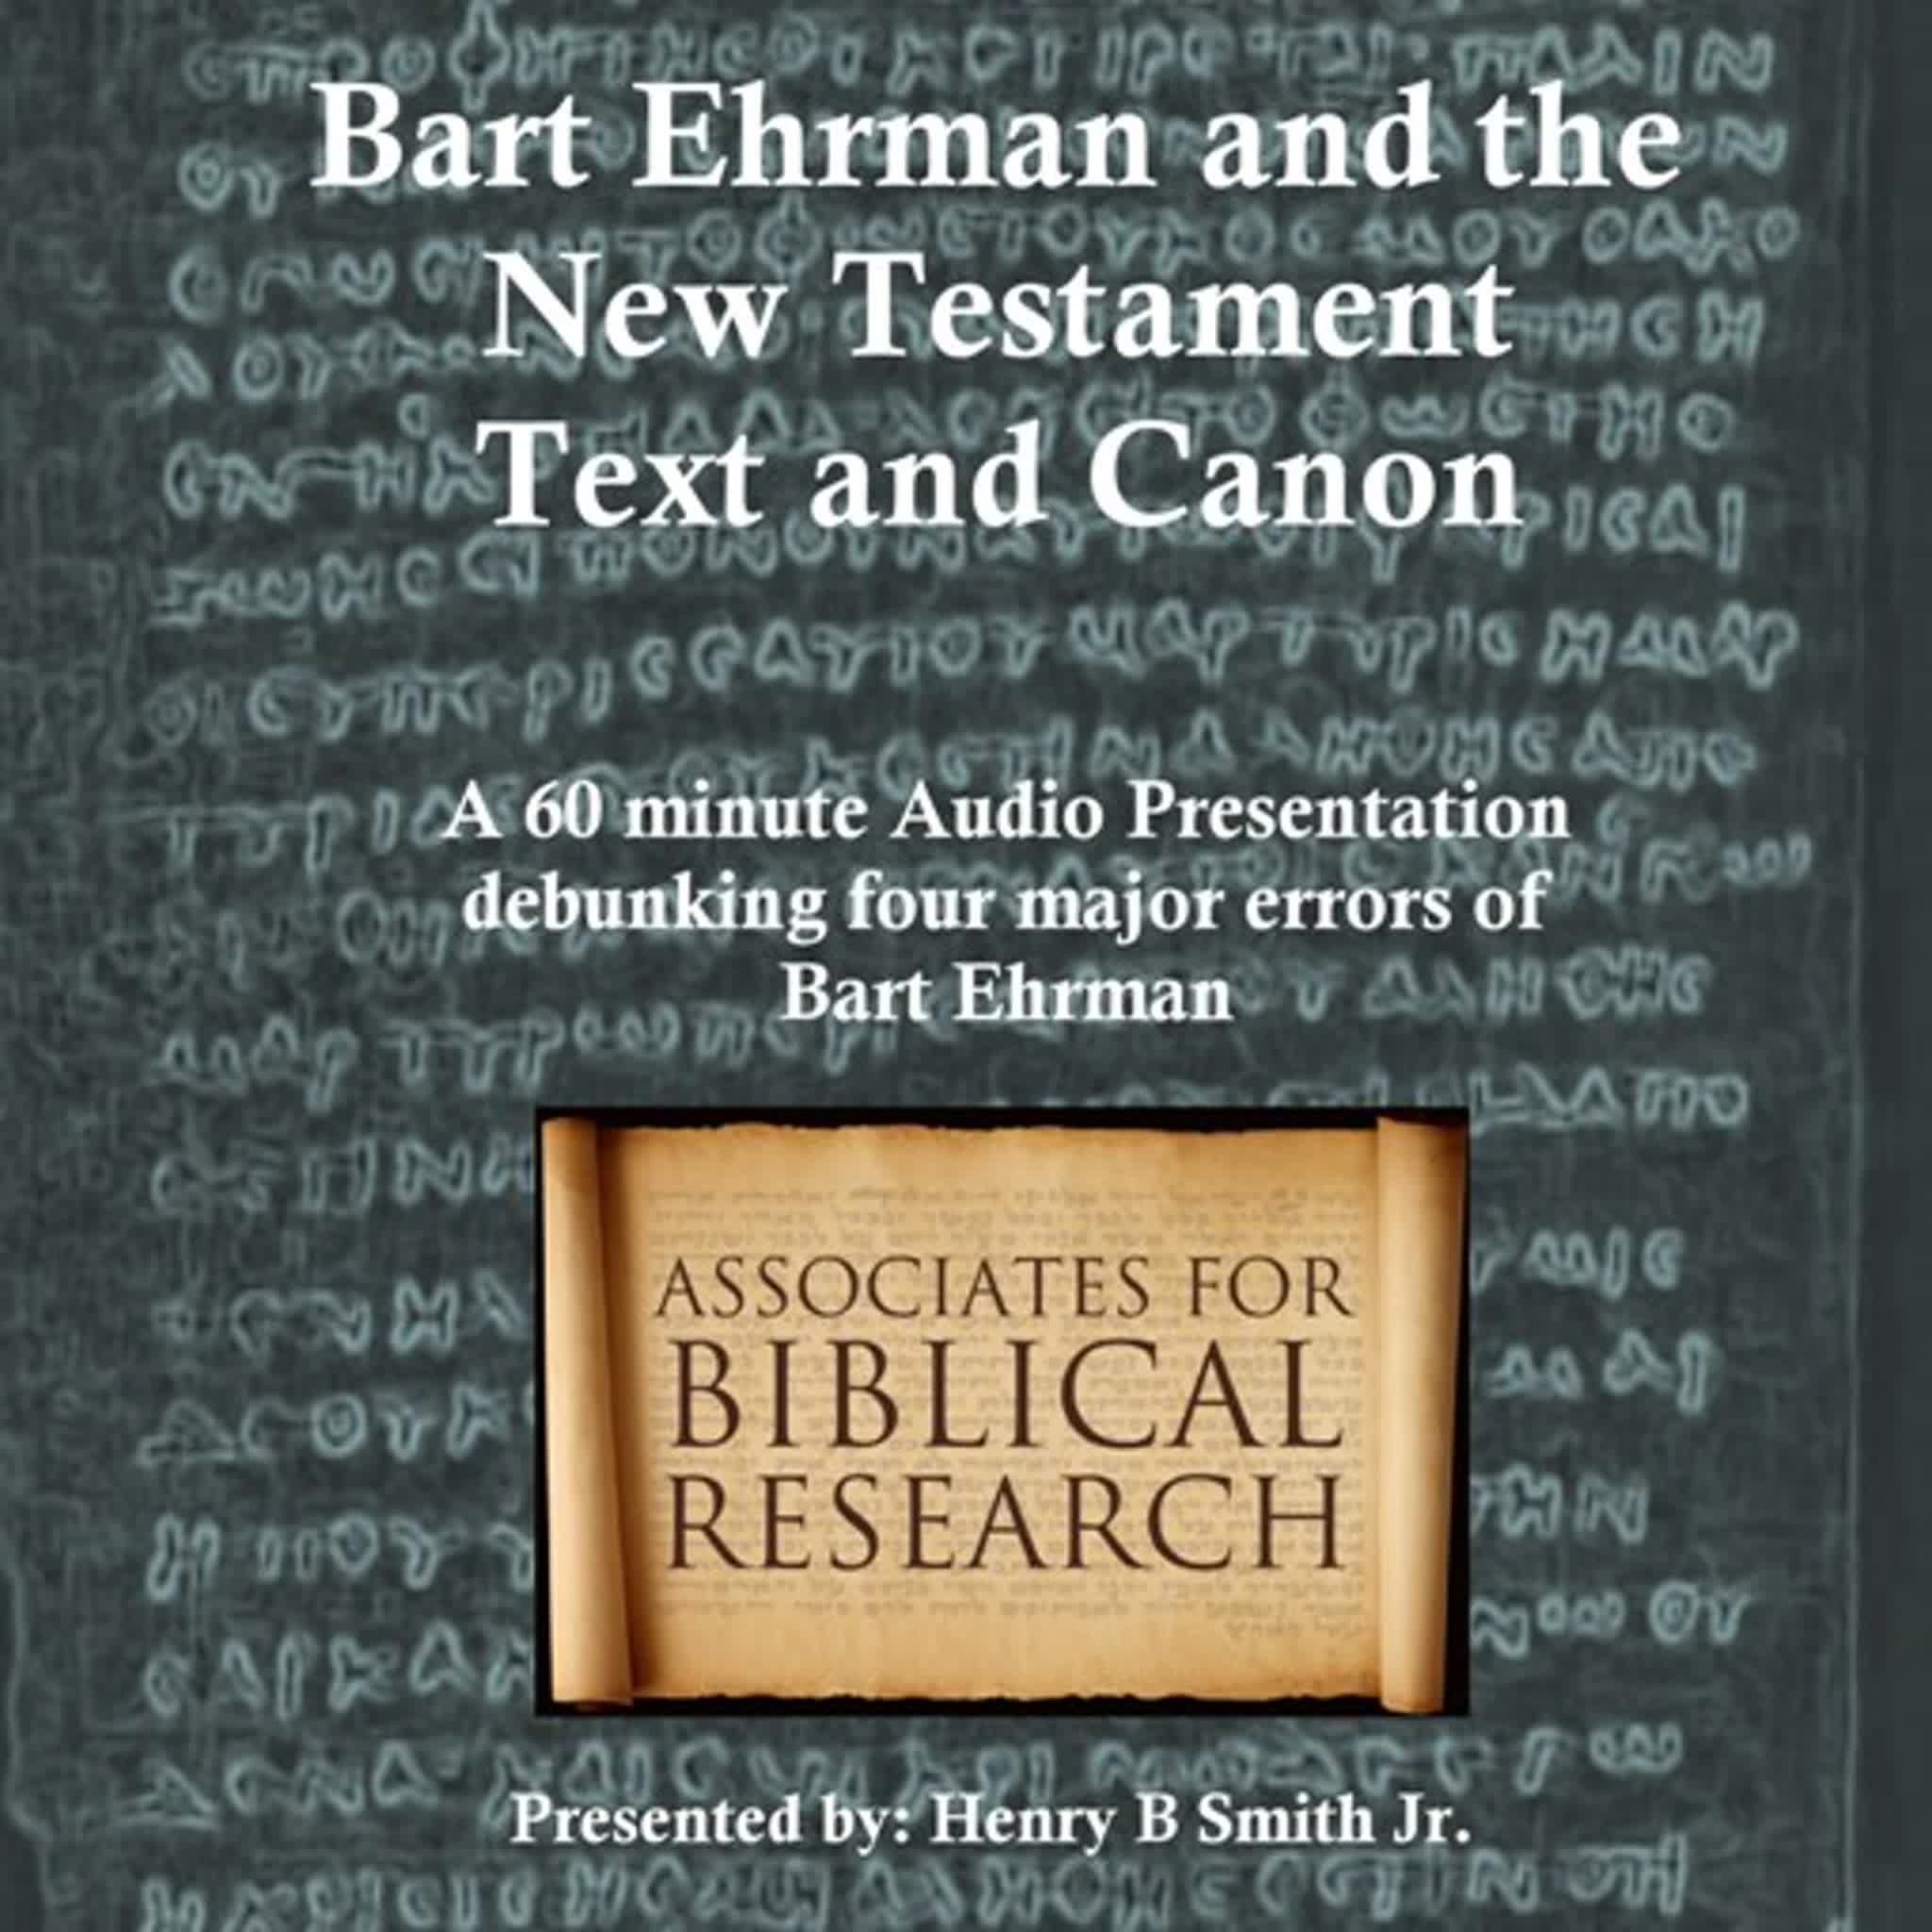 Bart Ehrman and the NT Text and Canon